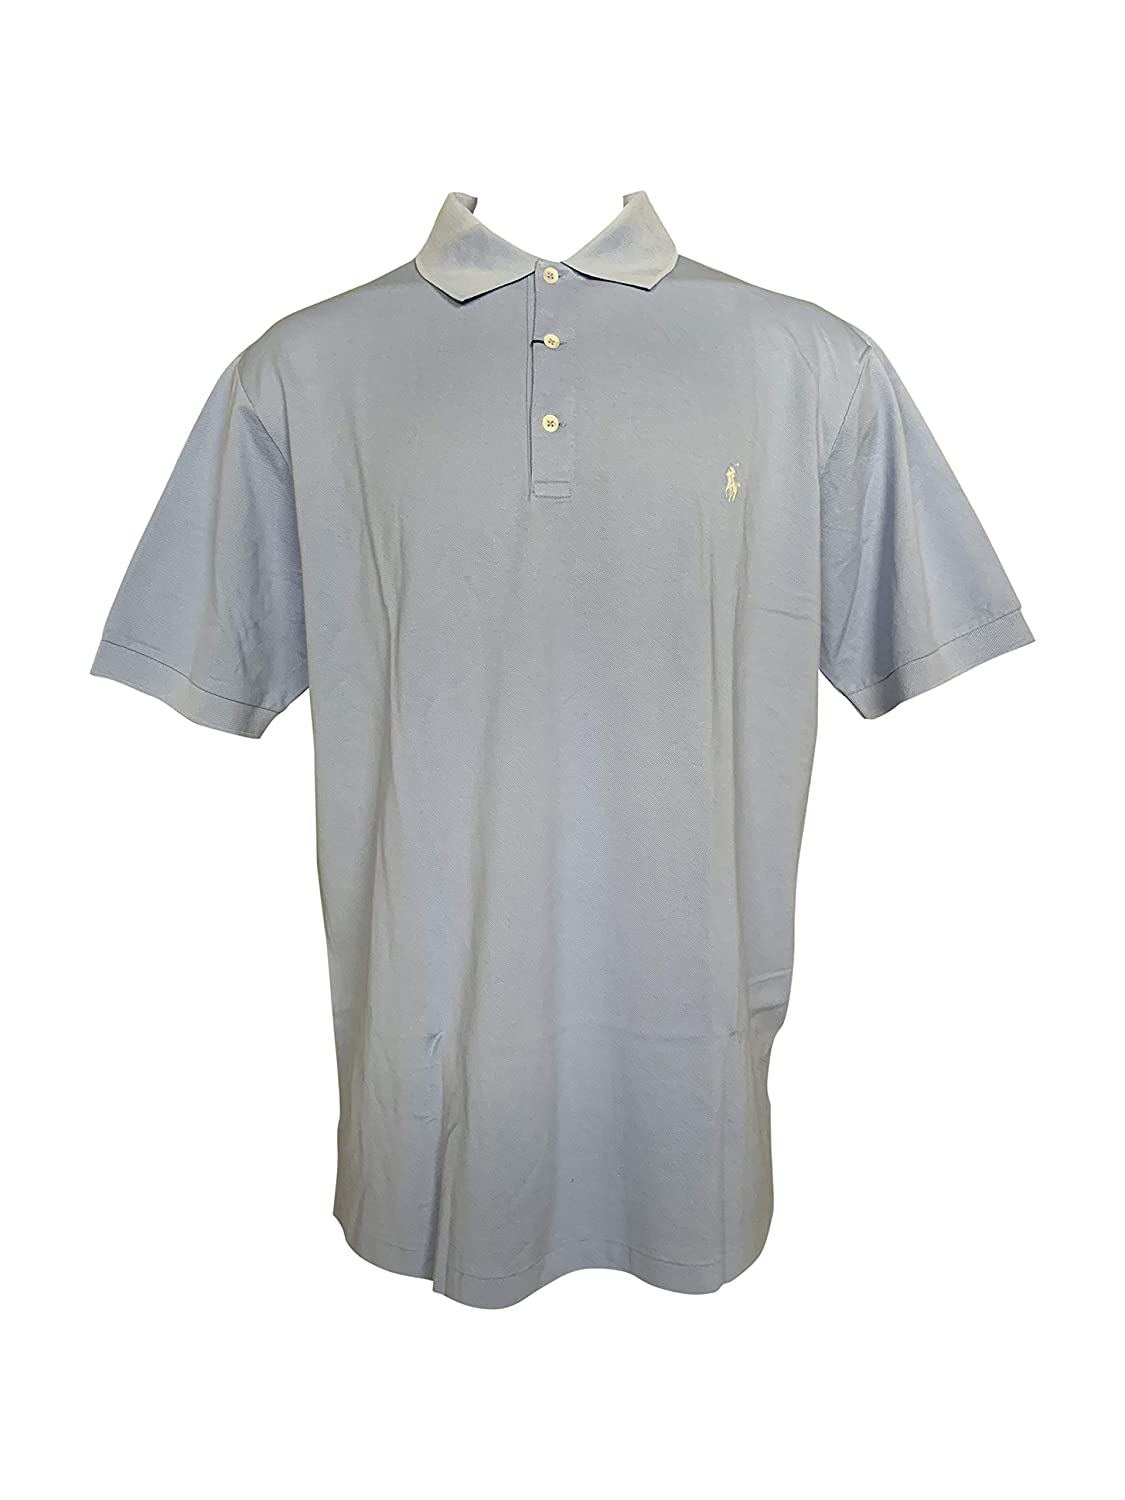 Polo Ralph Lauren Mens Classic Fit Big and Tall Mesh Polo Shirt